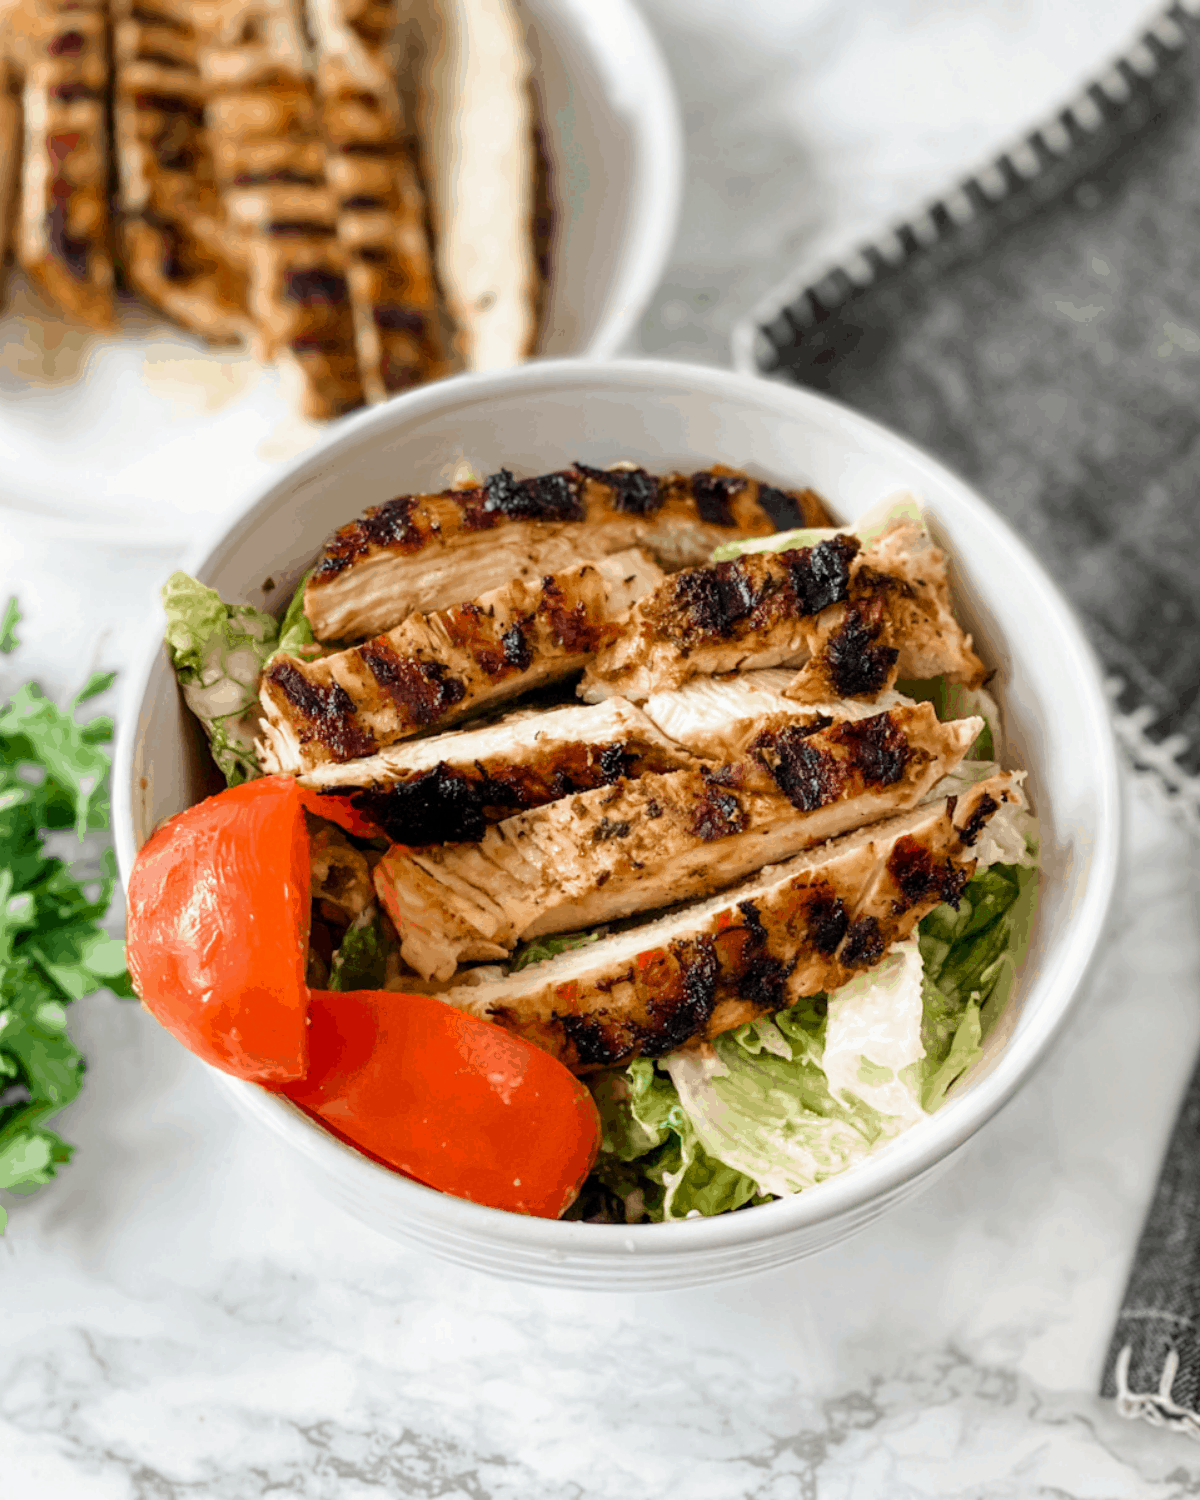 strips of grilled chicken on top of a salad.